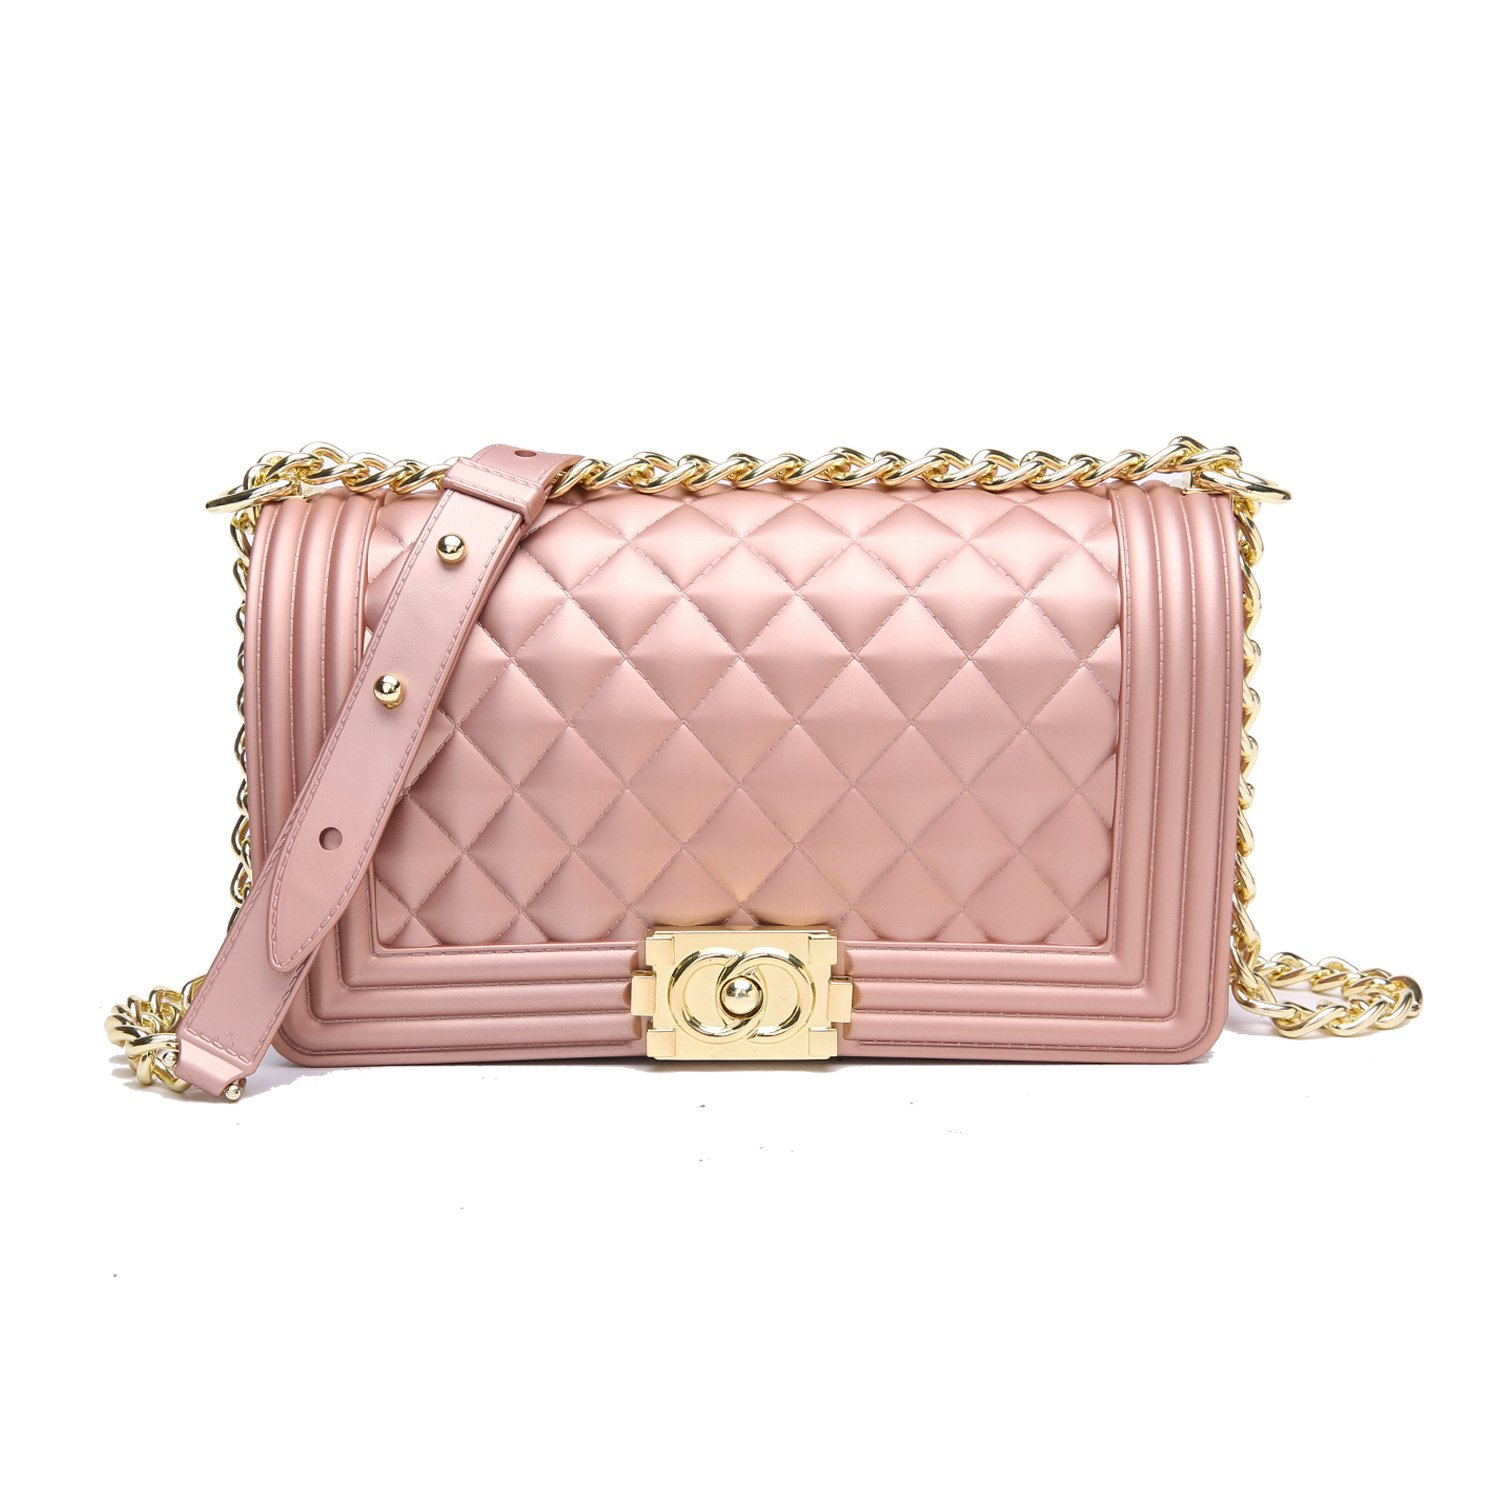 4989fc0fb0ce1 Galleon - Classic Silicon Quilted Crossbody Bag Luxury Shoulder Handbags  Purses For Womens Girls (Pink)